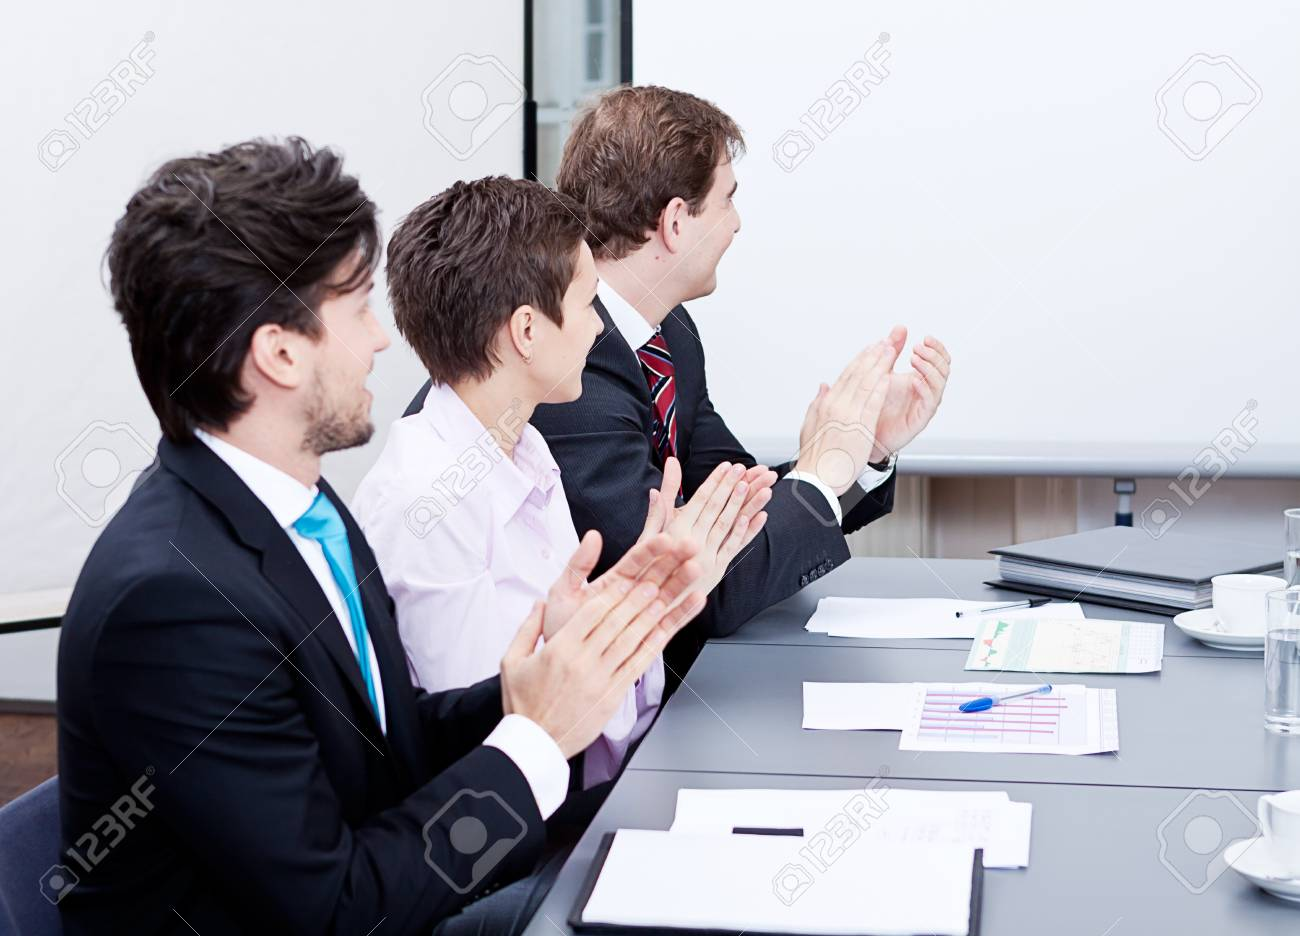 business team on table in office conference seminar presentation Stock Photo - 17289991